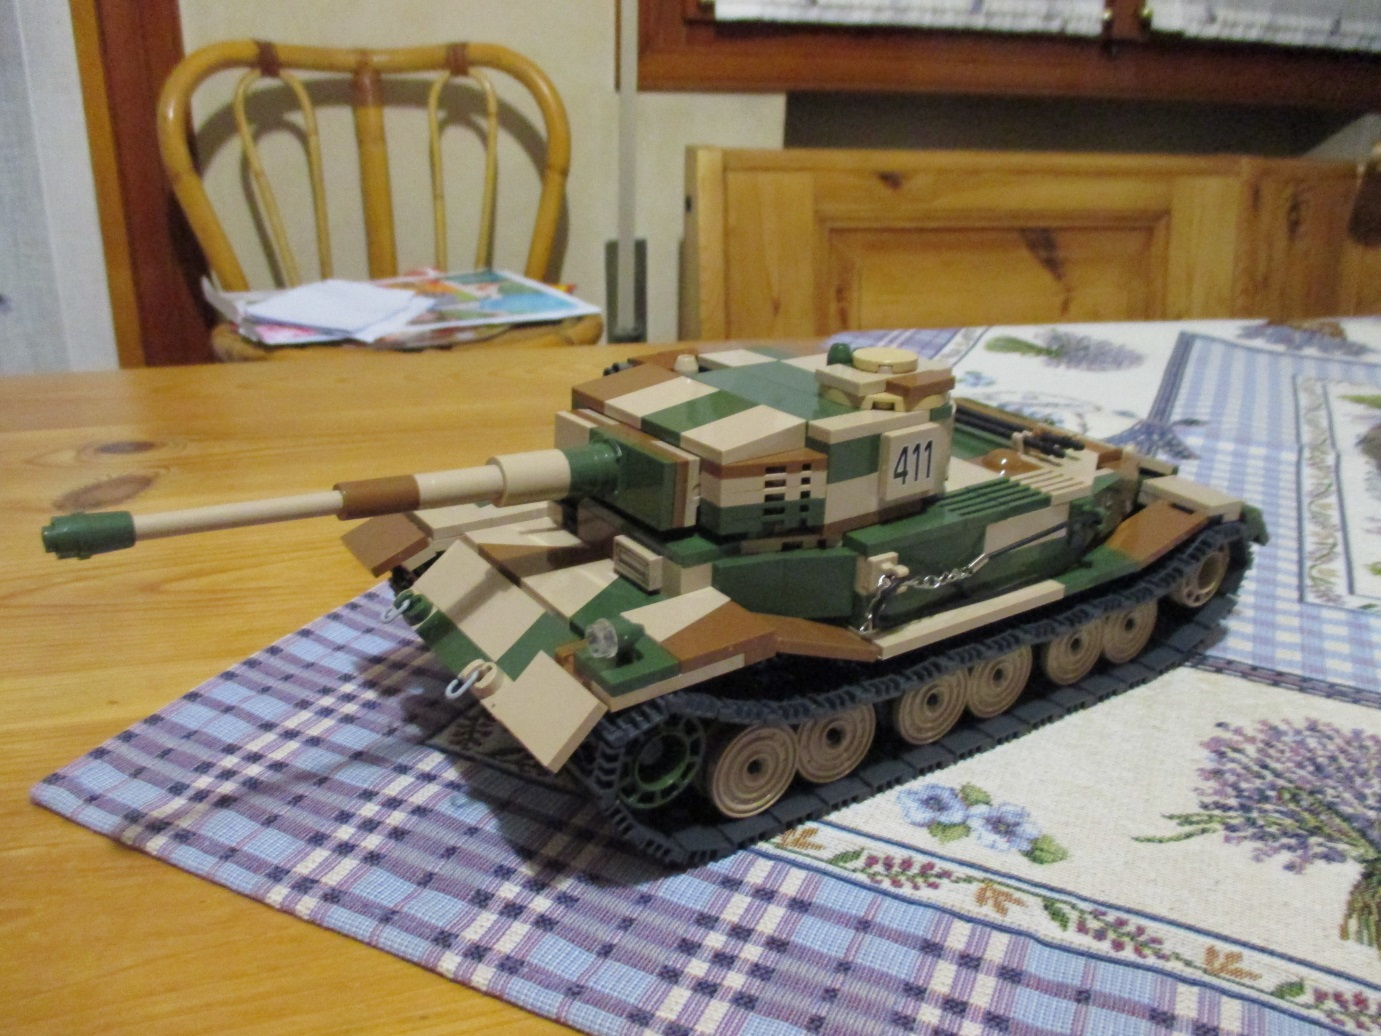 Vk45 01 tiger p cobi moc community creations and stories build the fenders was the hardest part for the rest the tank desing was pretty simple some random bricks to show a engine and rubber wires used for malvernweather Choice Image